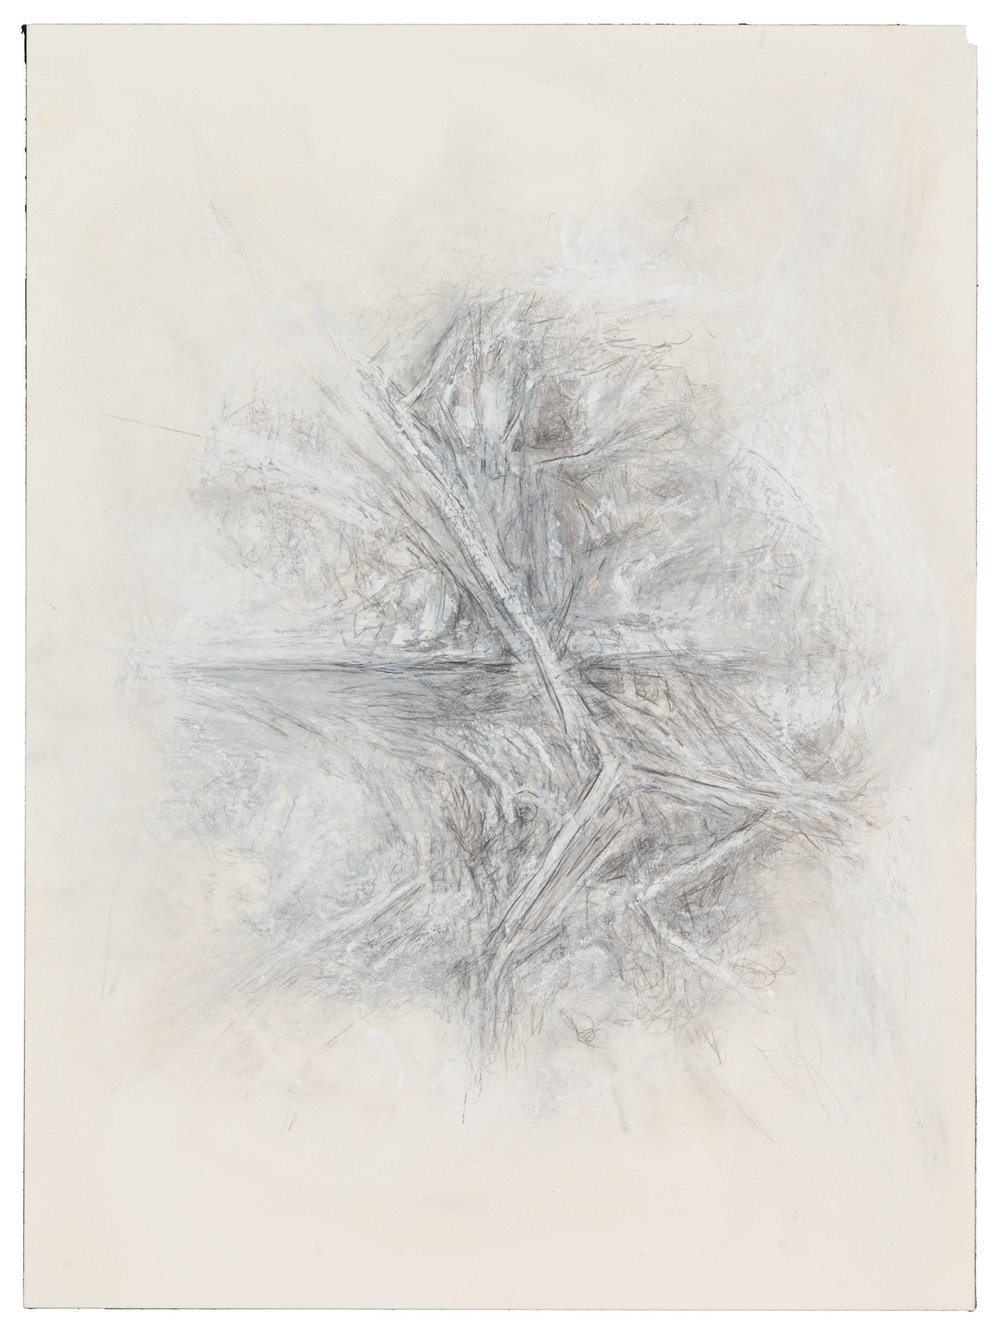 In the late 1990s, begins drawing exclusively, creating one of her most prolific bodies of work: drawings influenced and inspired by her changing field of vision.